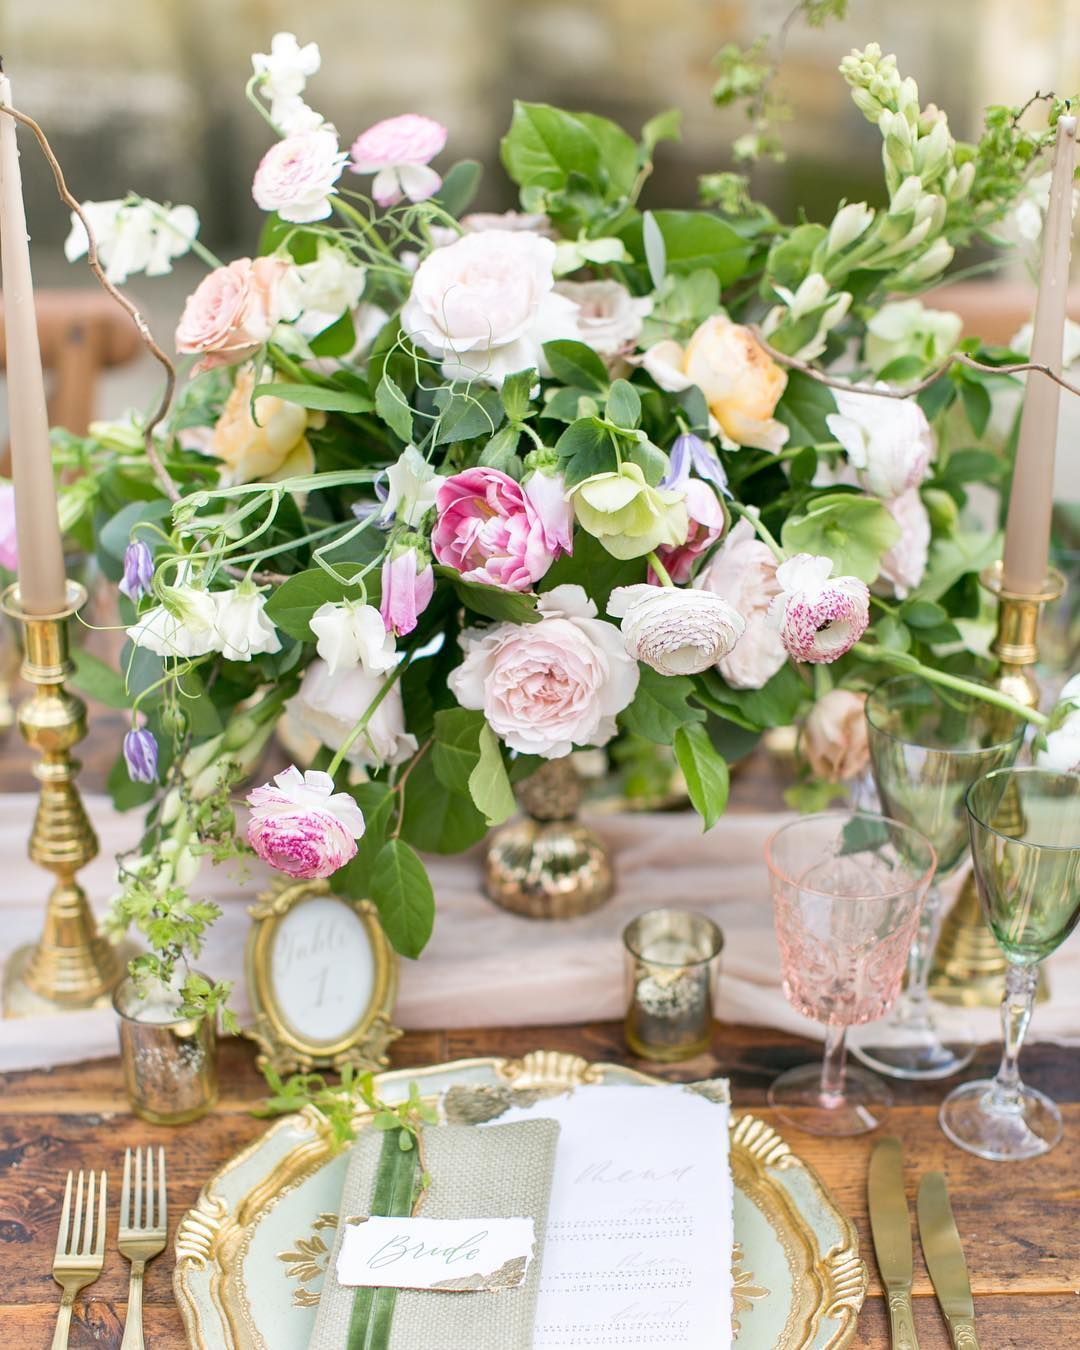 Planning Our Big Day Centerpieces And Wedding Colors: Pin By Heather Canino On Wedding Table Idea's